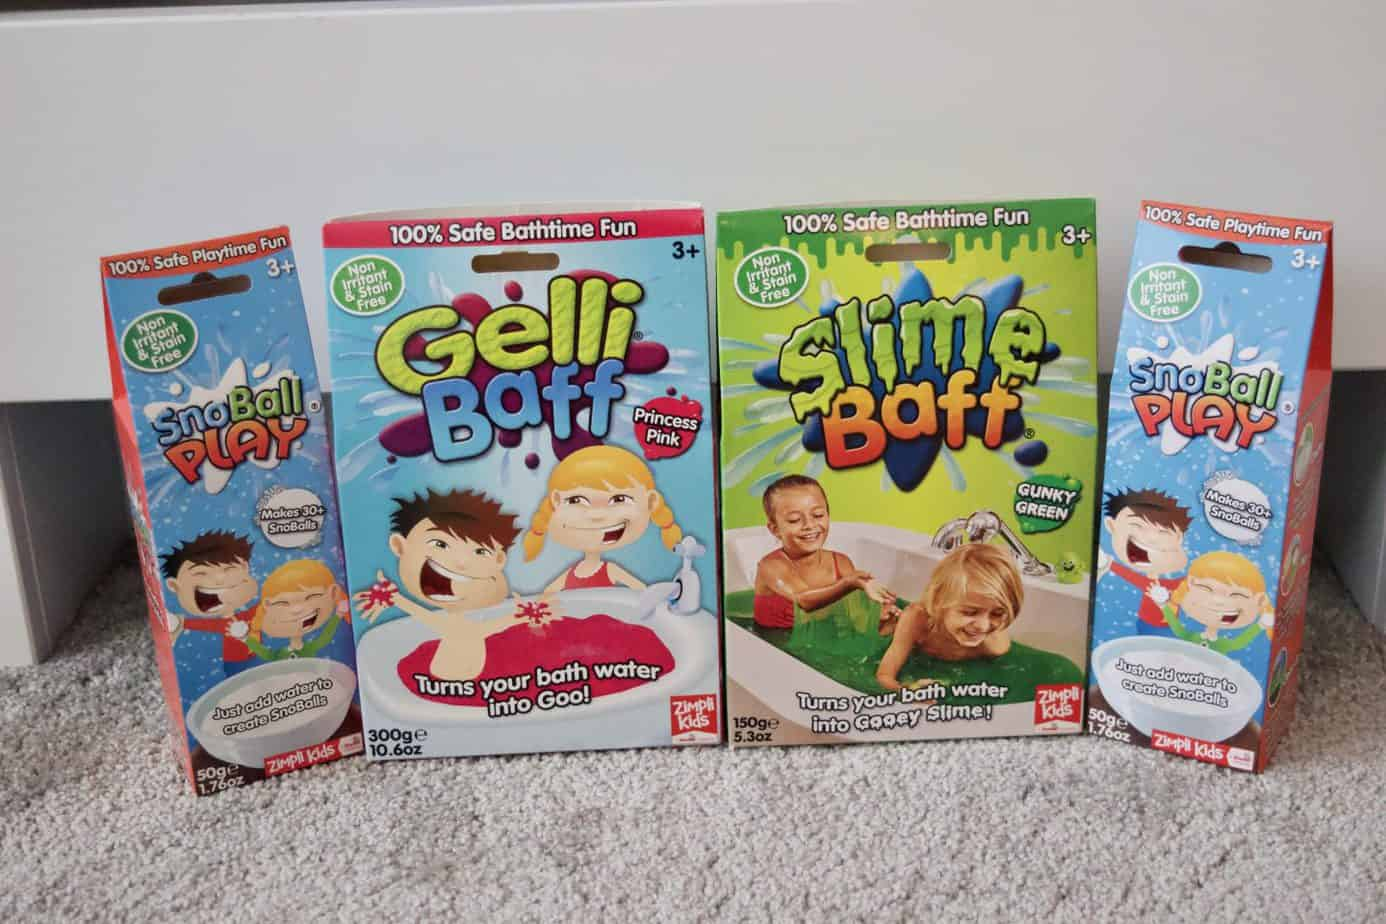 Gelli baff, slime baff and snowball play packs together